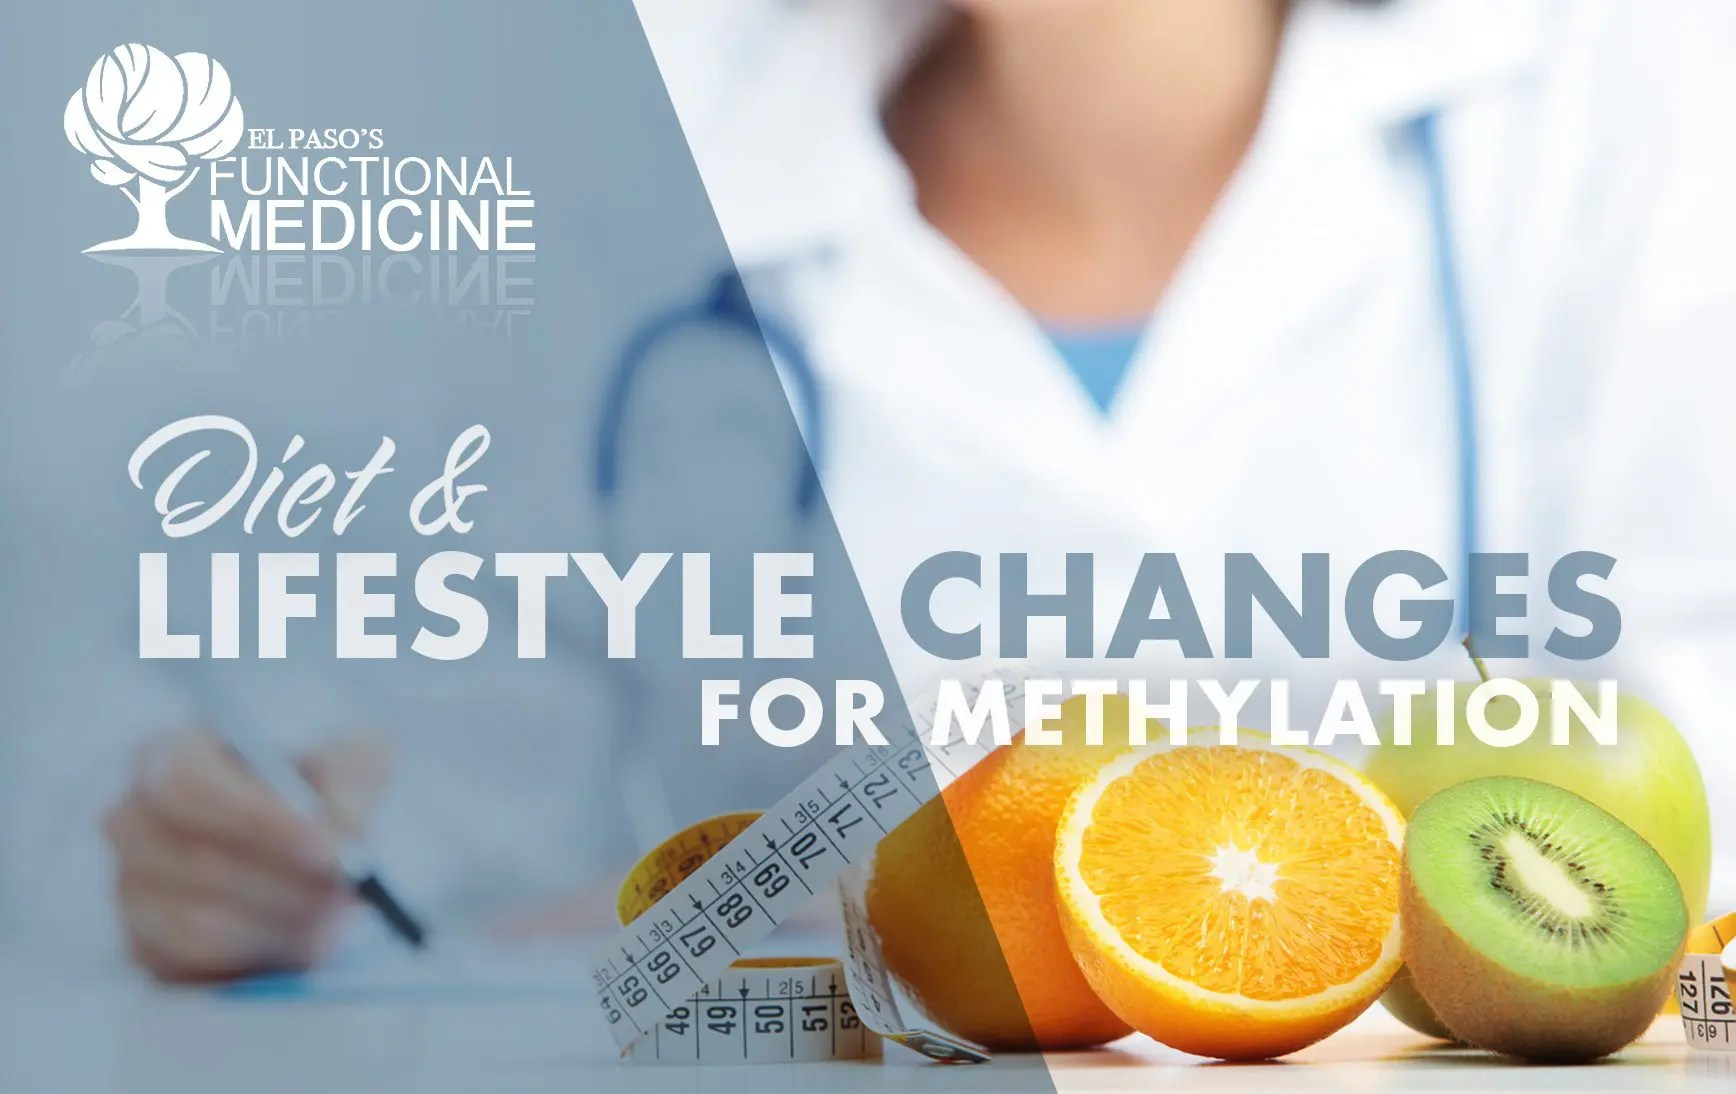 Diet and Lifestyle Changes for Methylation